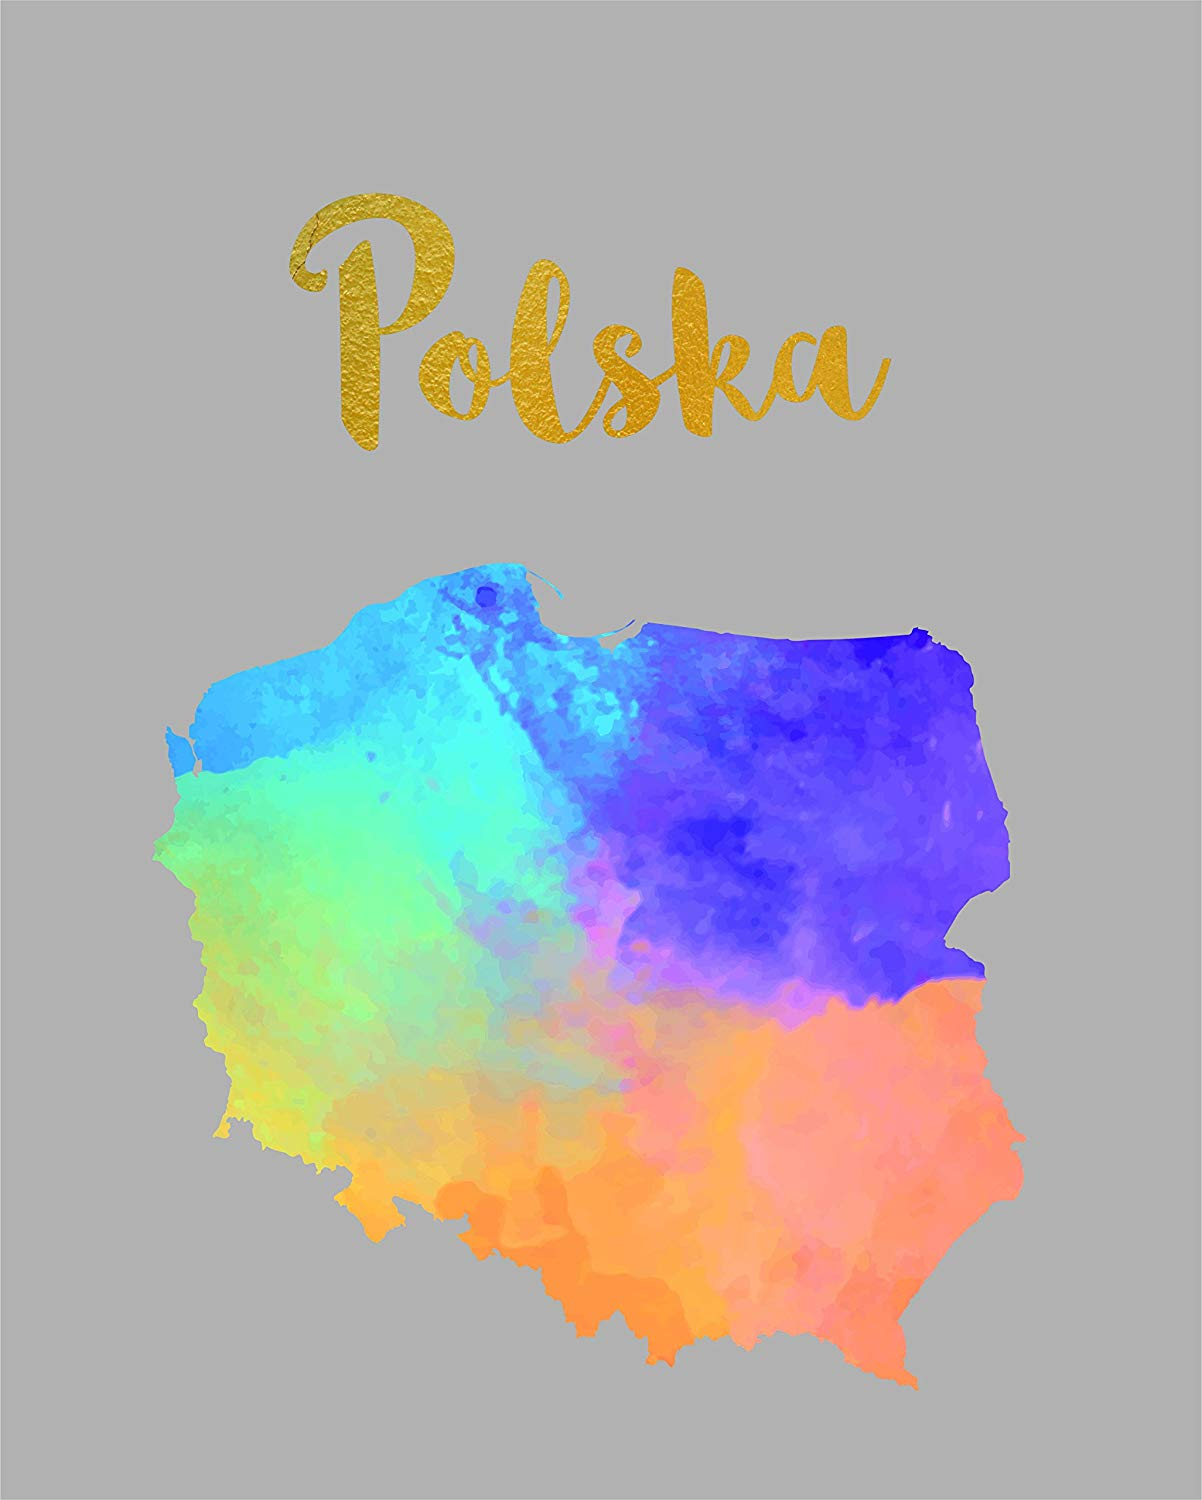 6a86b71a4 Get Quotations · Poland Map Watercolor Polish POSTER A3 Print Polska Home  Decor Products House Decorations Decal UNFRAMED Gifts